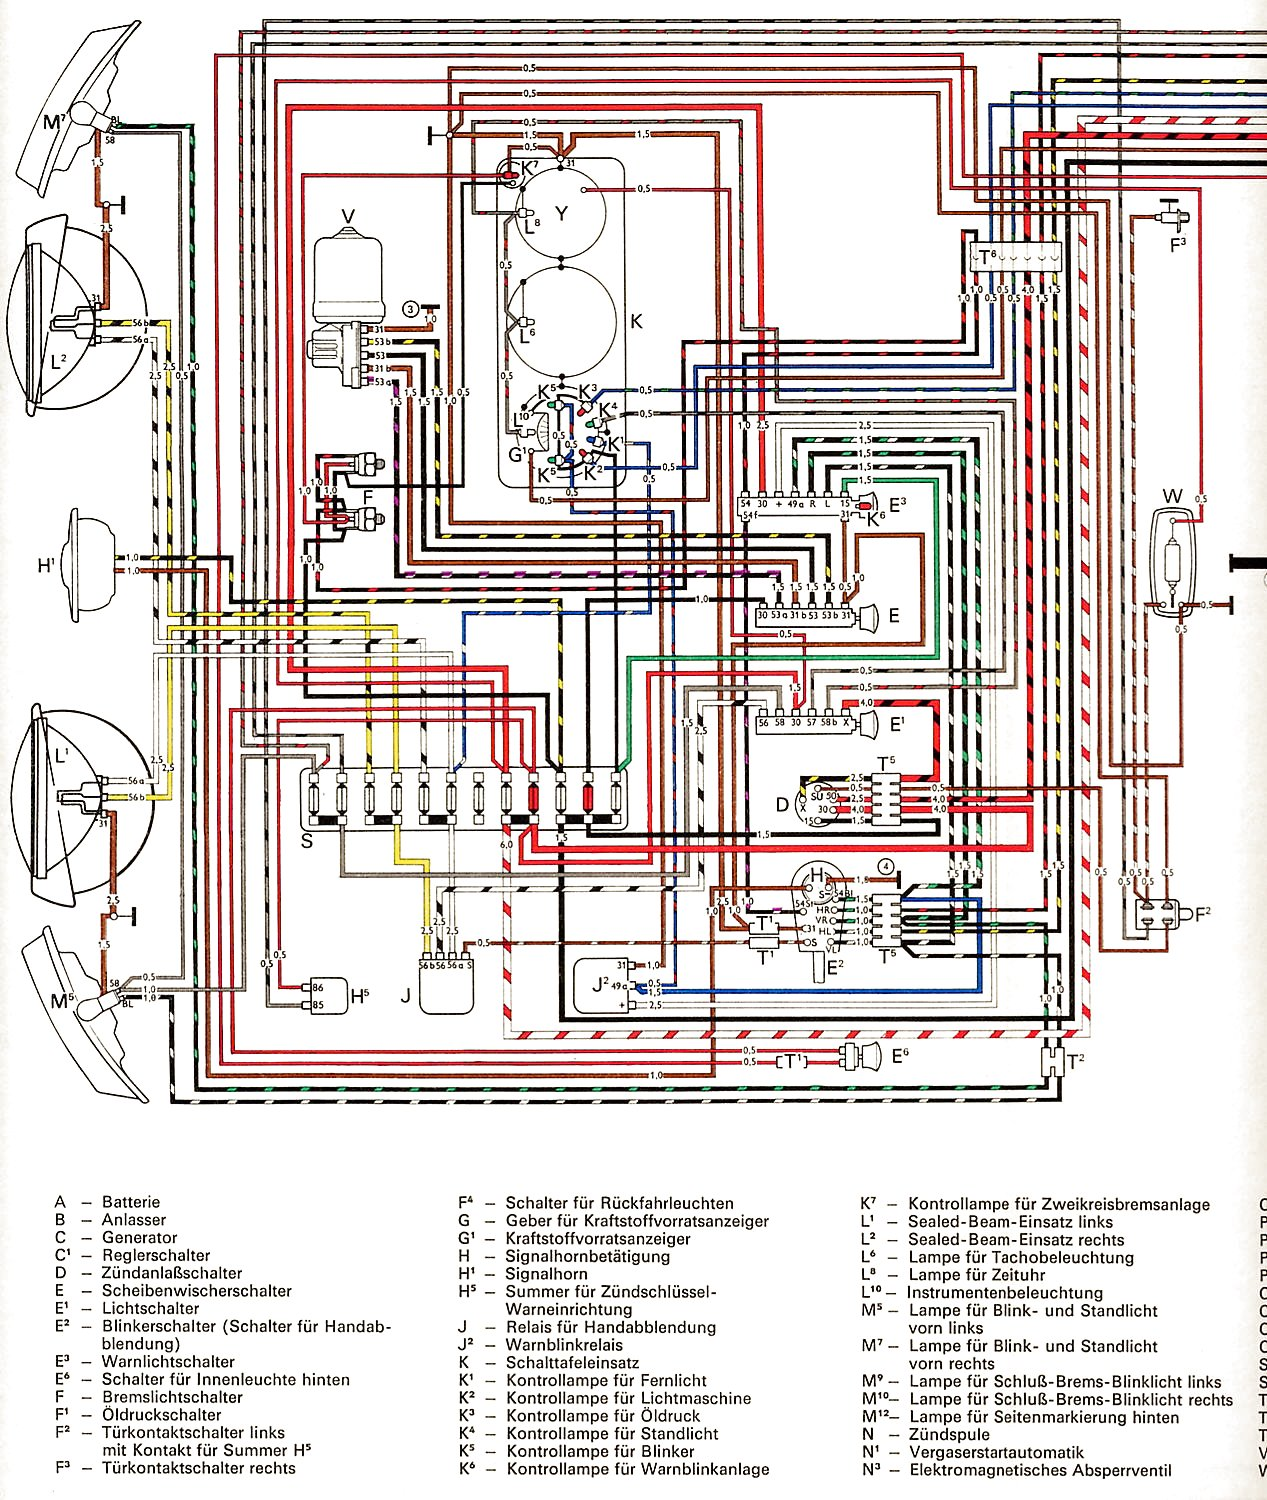 vintagebus com vw bus and other wiring diagrams rh vintagebus com 1970 vw beetle headlight switch wiring diagram 1970 vw bus wiring diagram